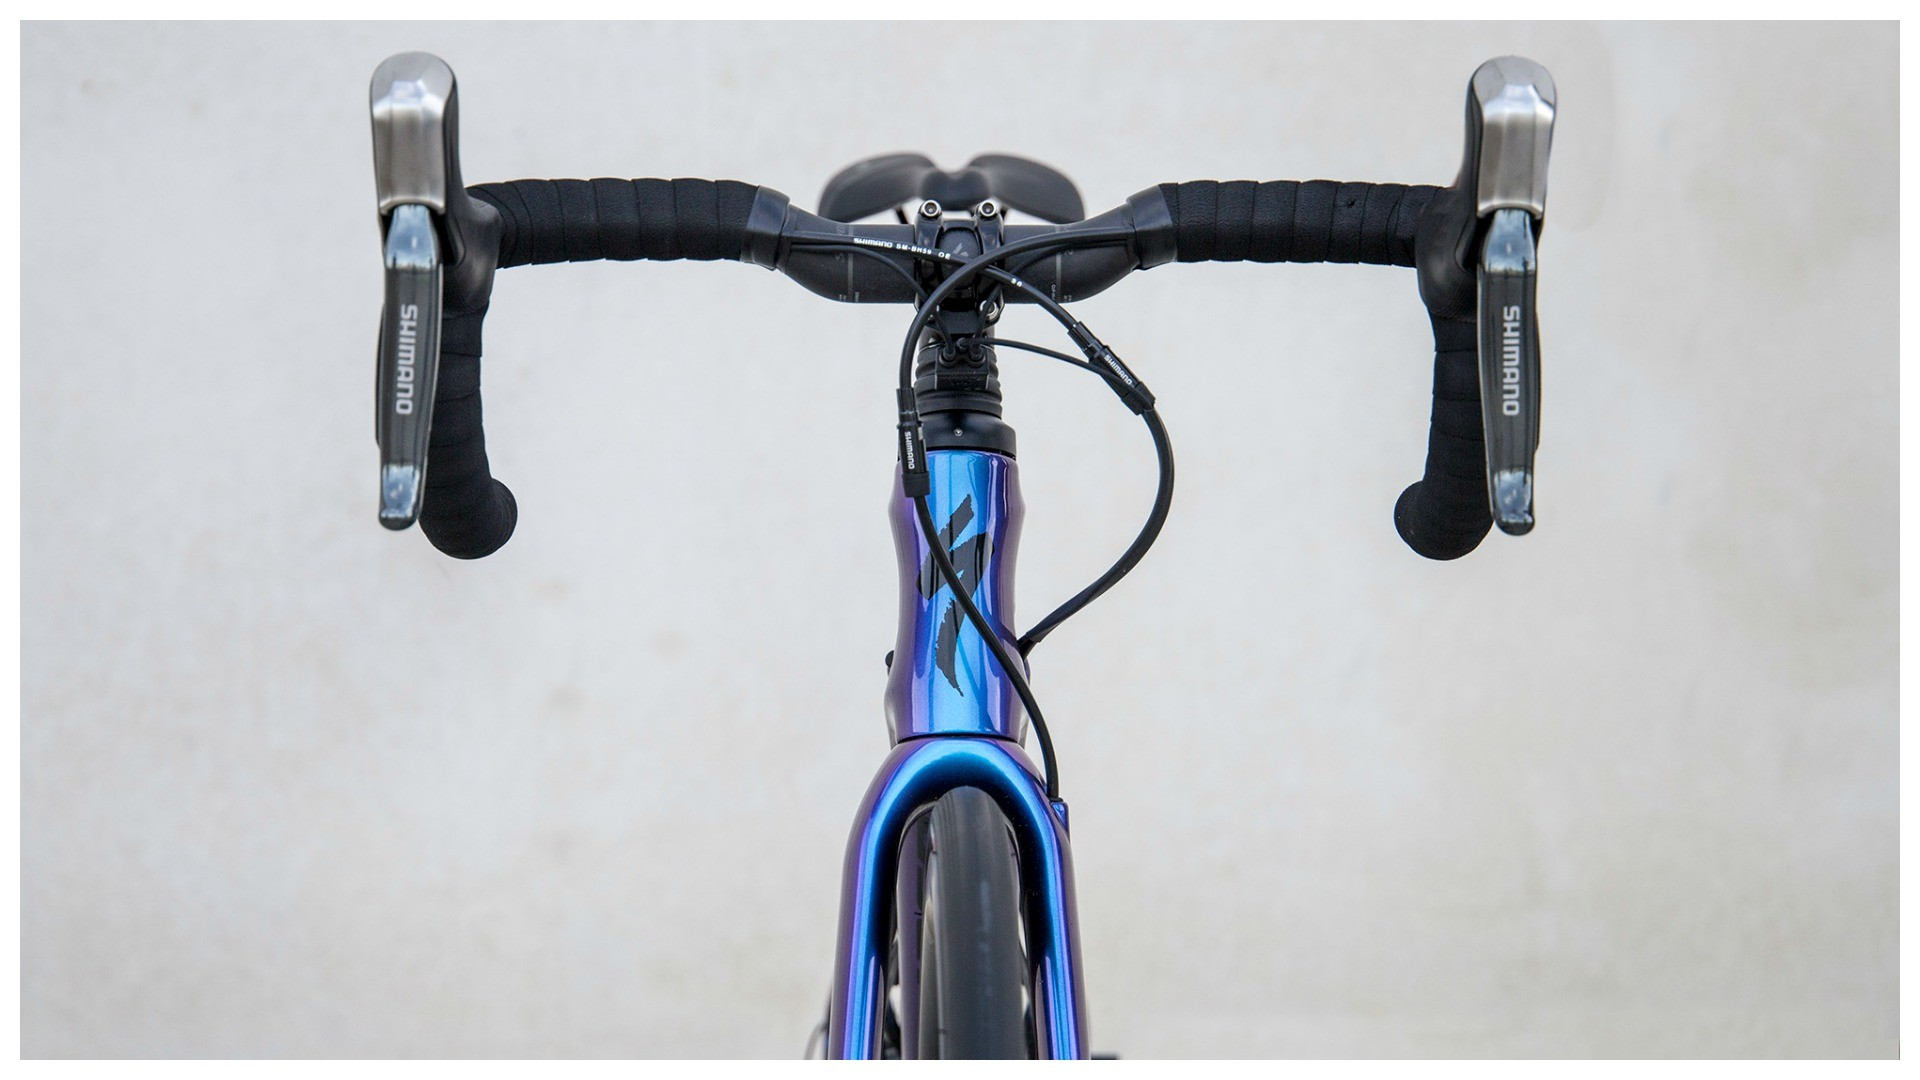 The new Ruby also features Specialized's new Hover handlebars